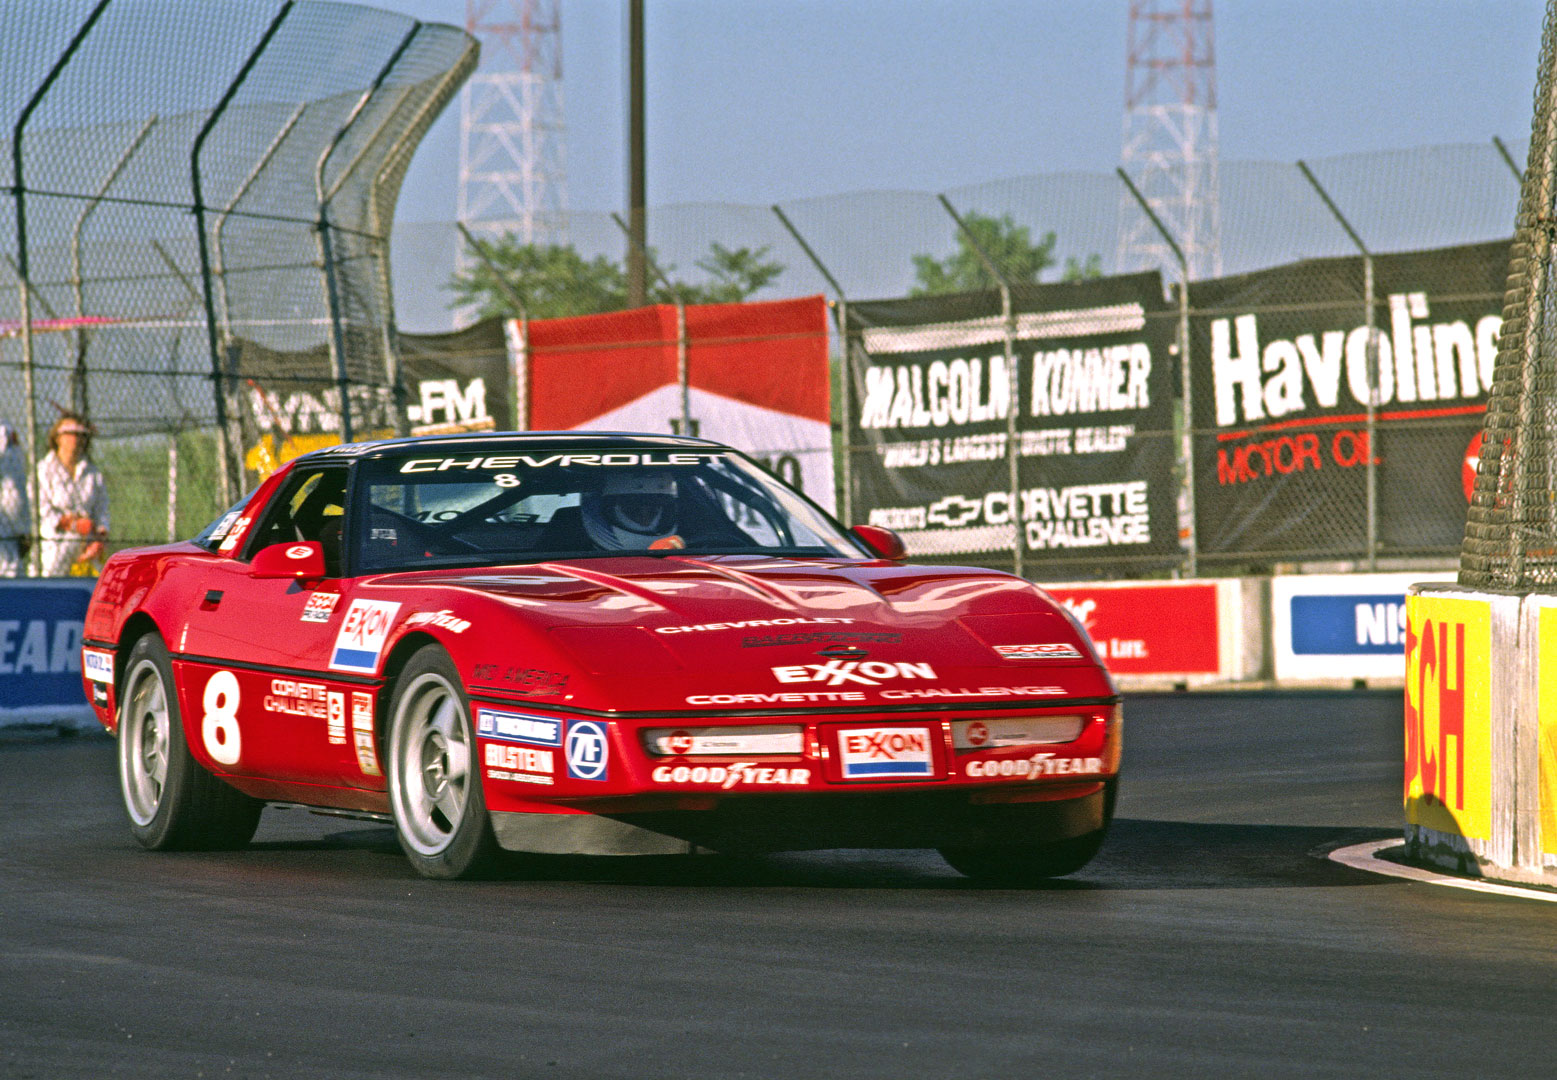 Mark Wolocatiuk driving in the Corvette Challenge at the 1988 Meadowlands IndyCar Grand Prix in New Jersey.